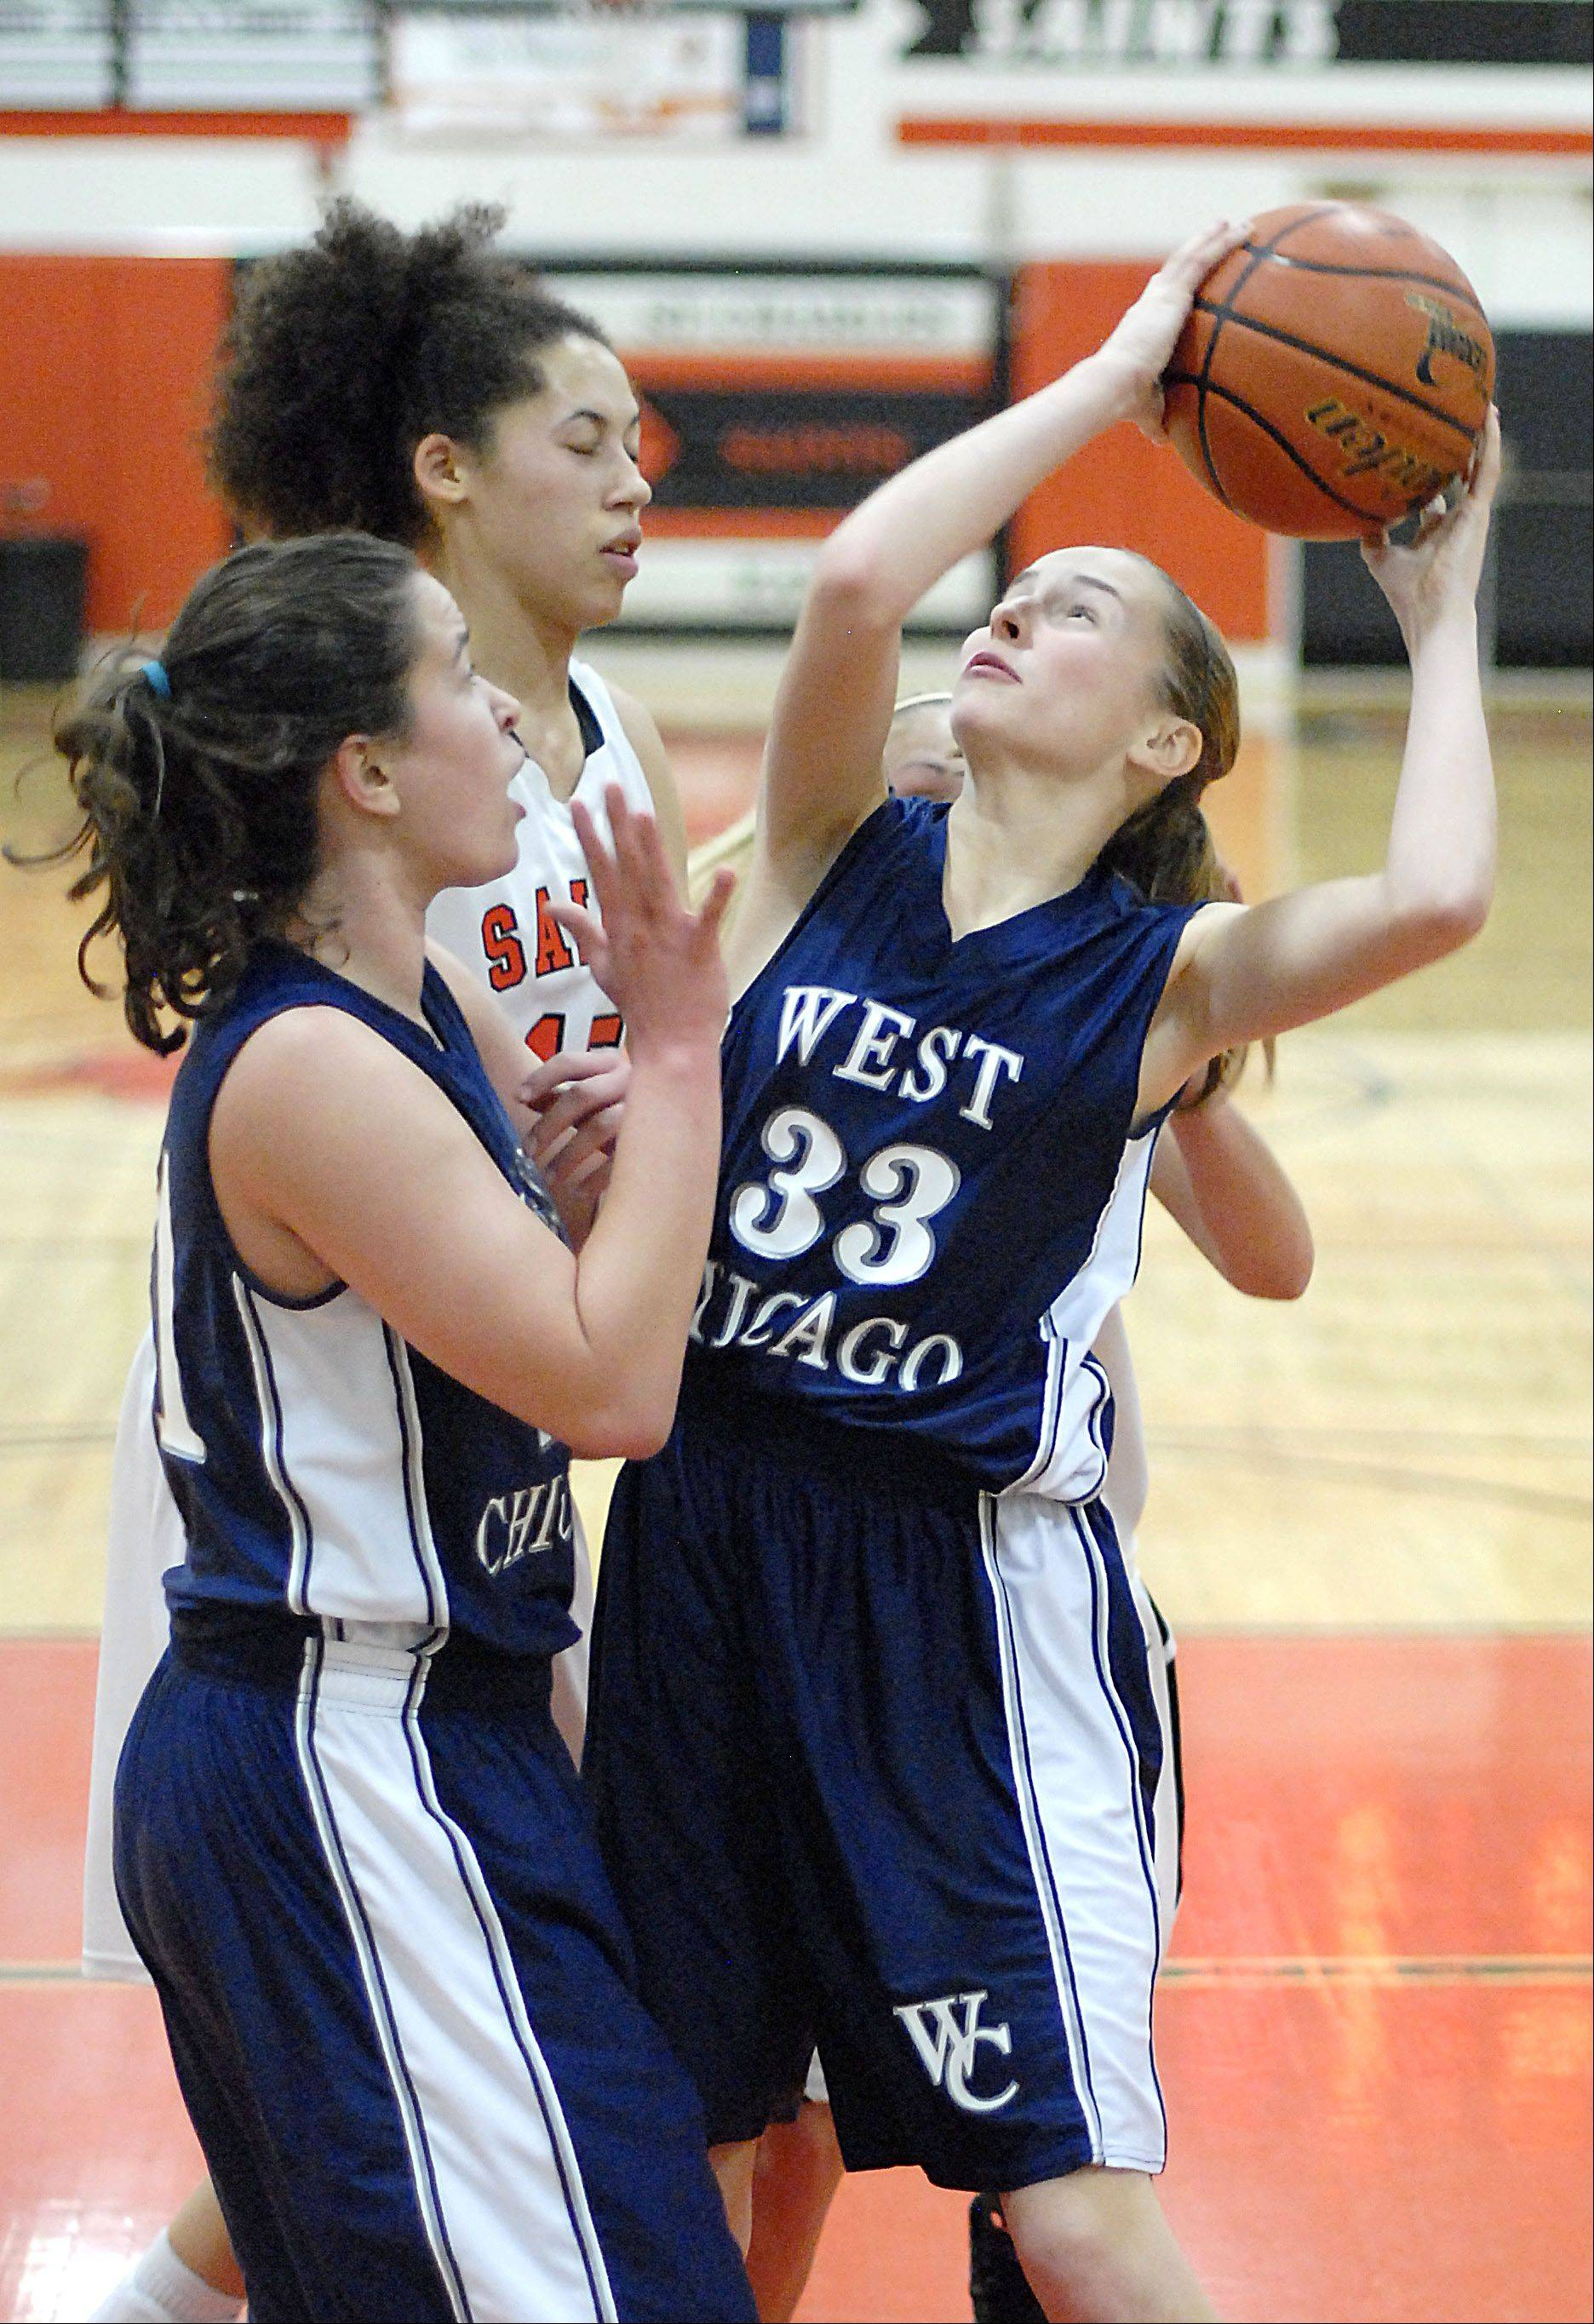 Images from the West Chicago vs. St. Charles East girls basketball game Tuesday, December 4, 2012.